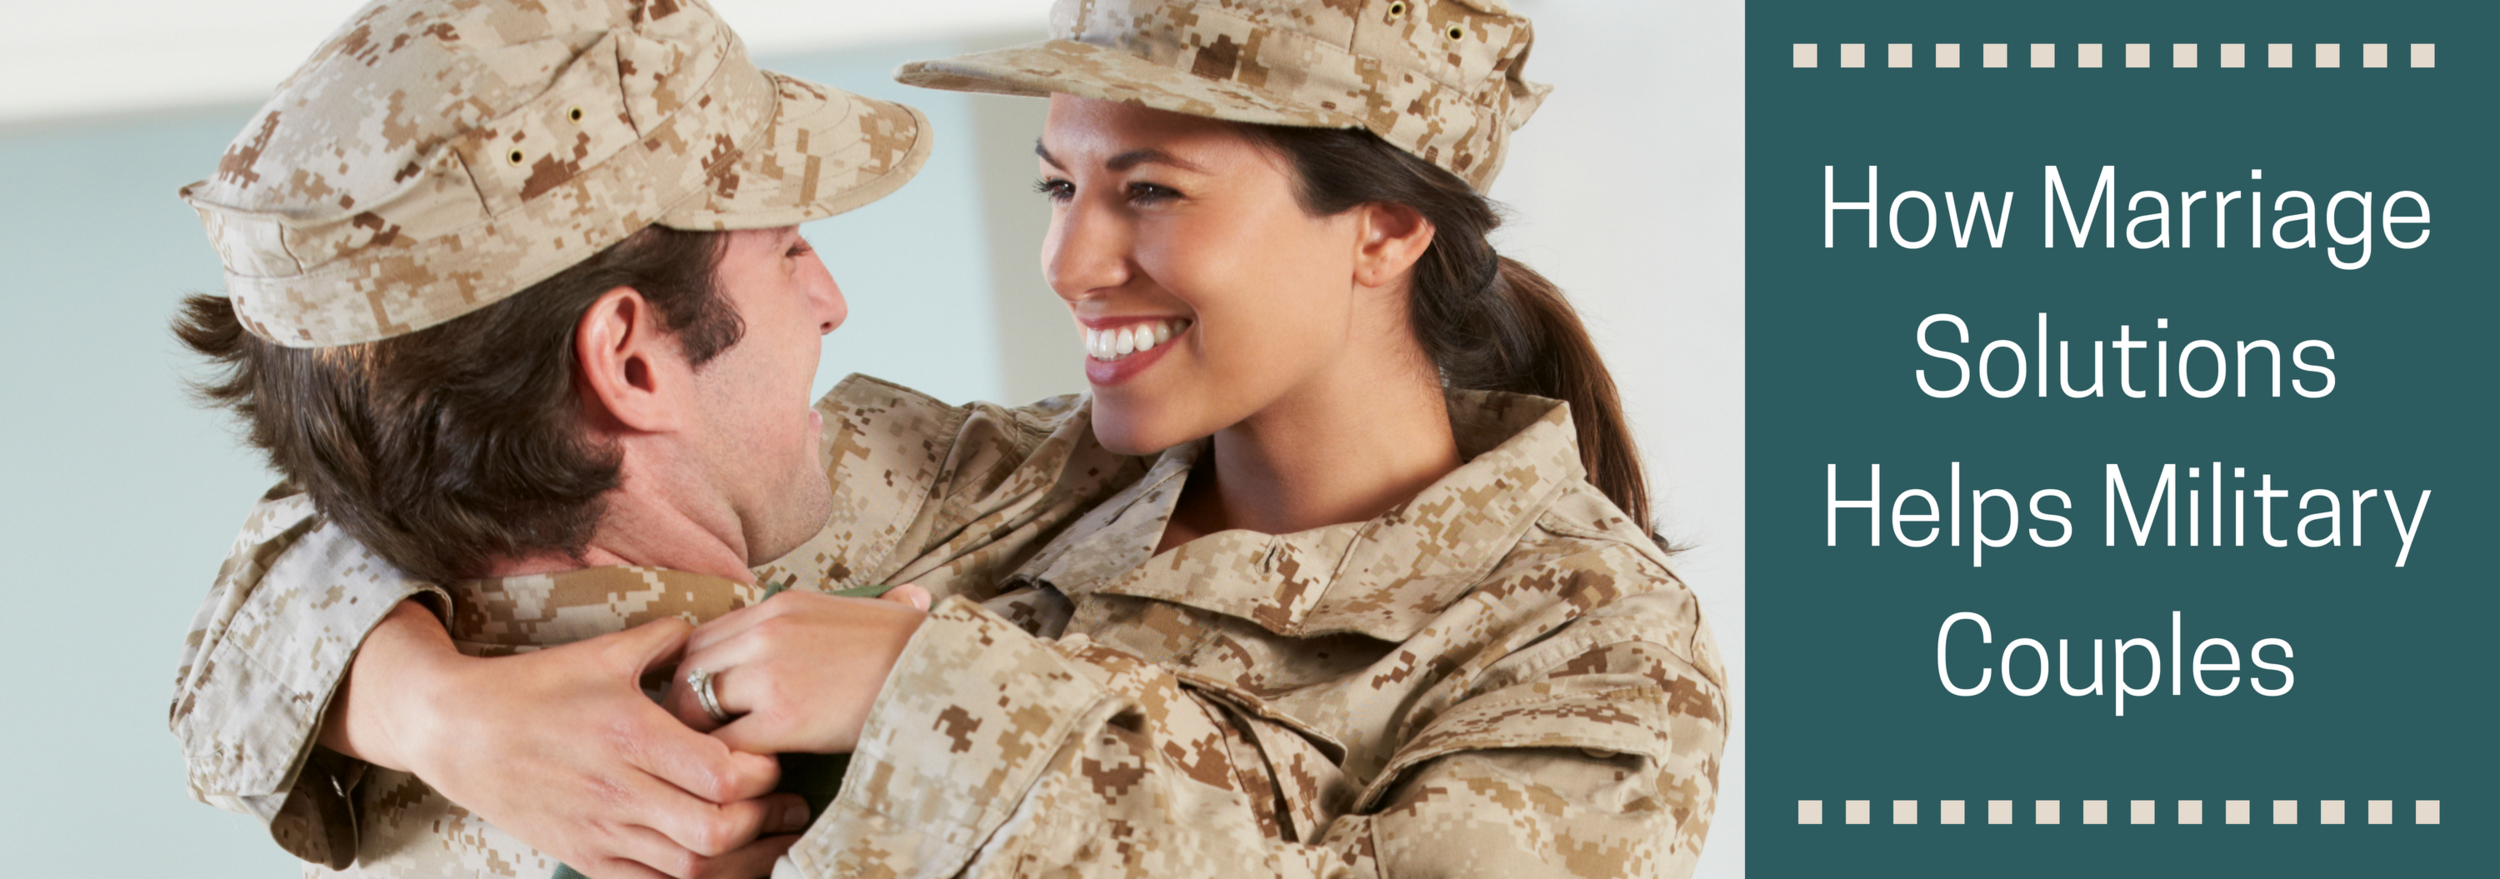 How Does Marriage Solutions Help Military Couples.png